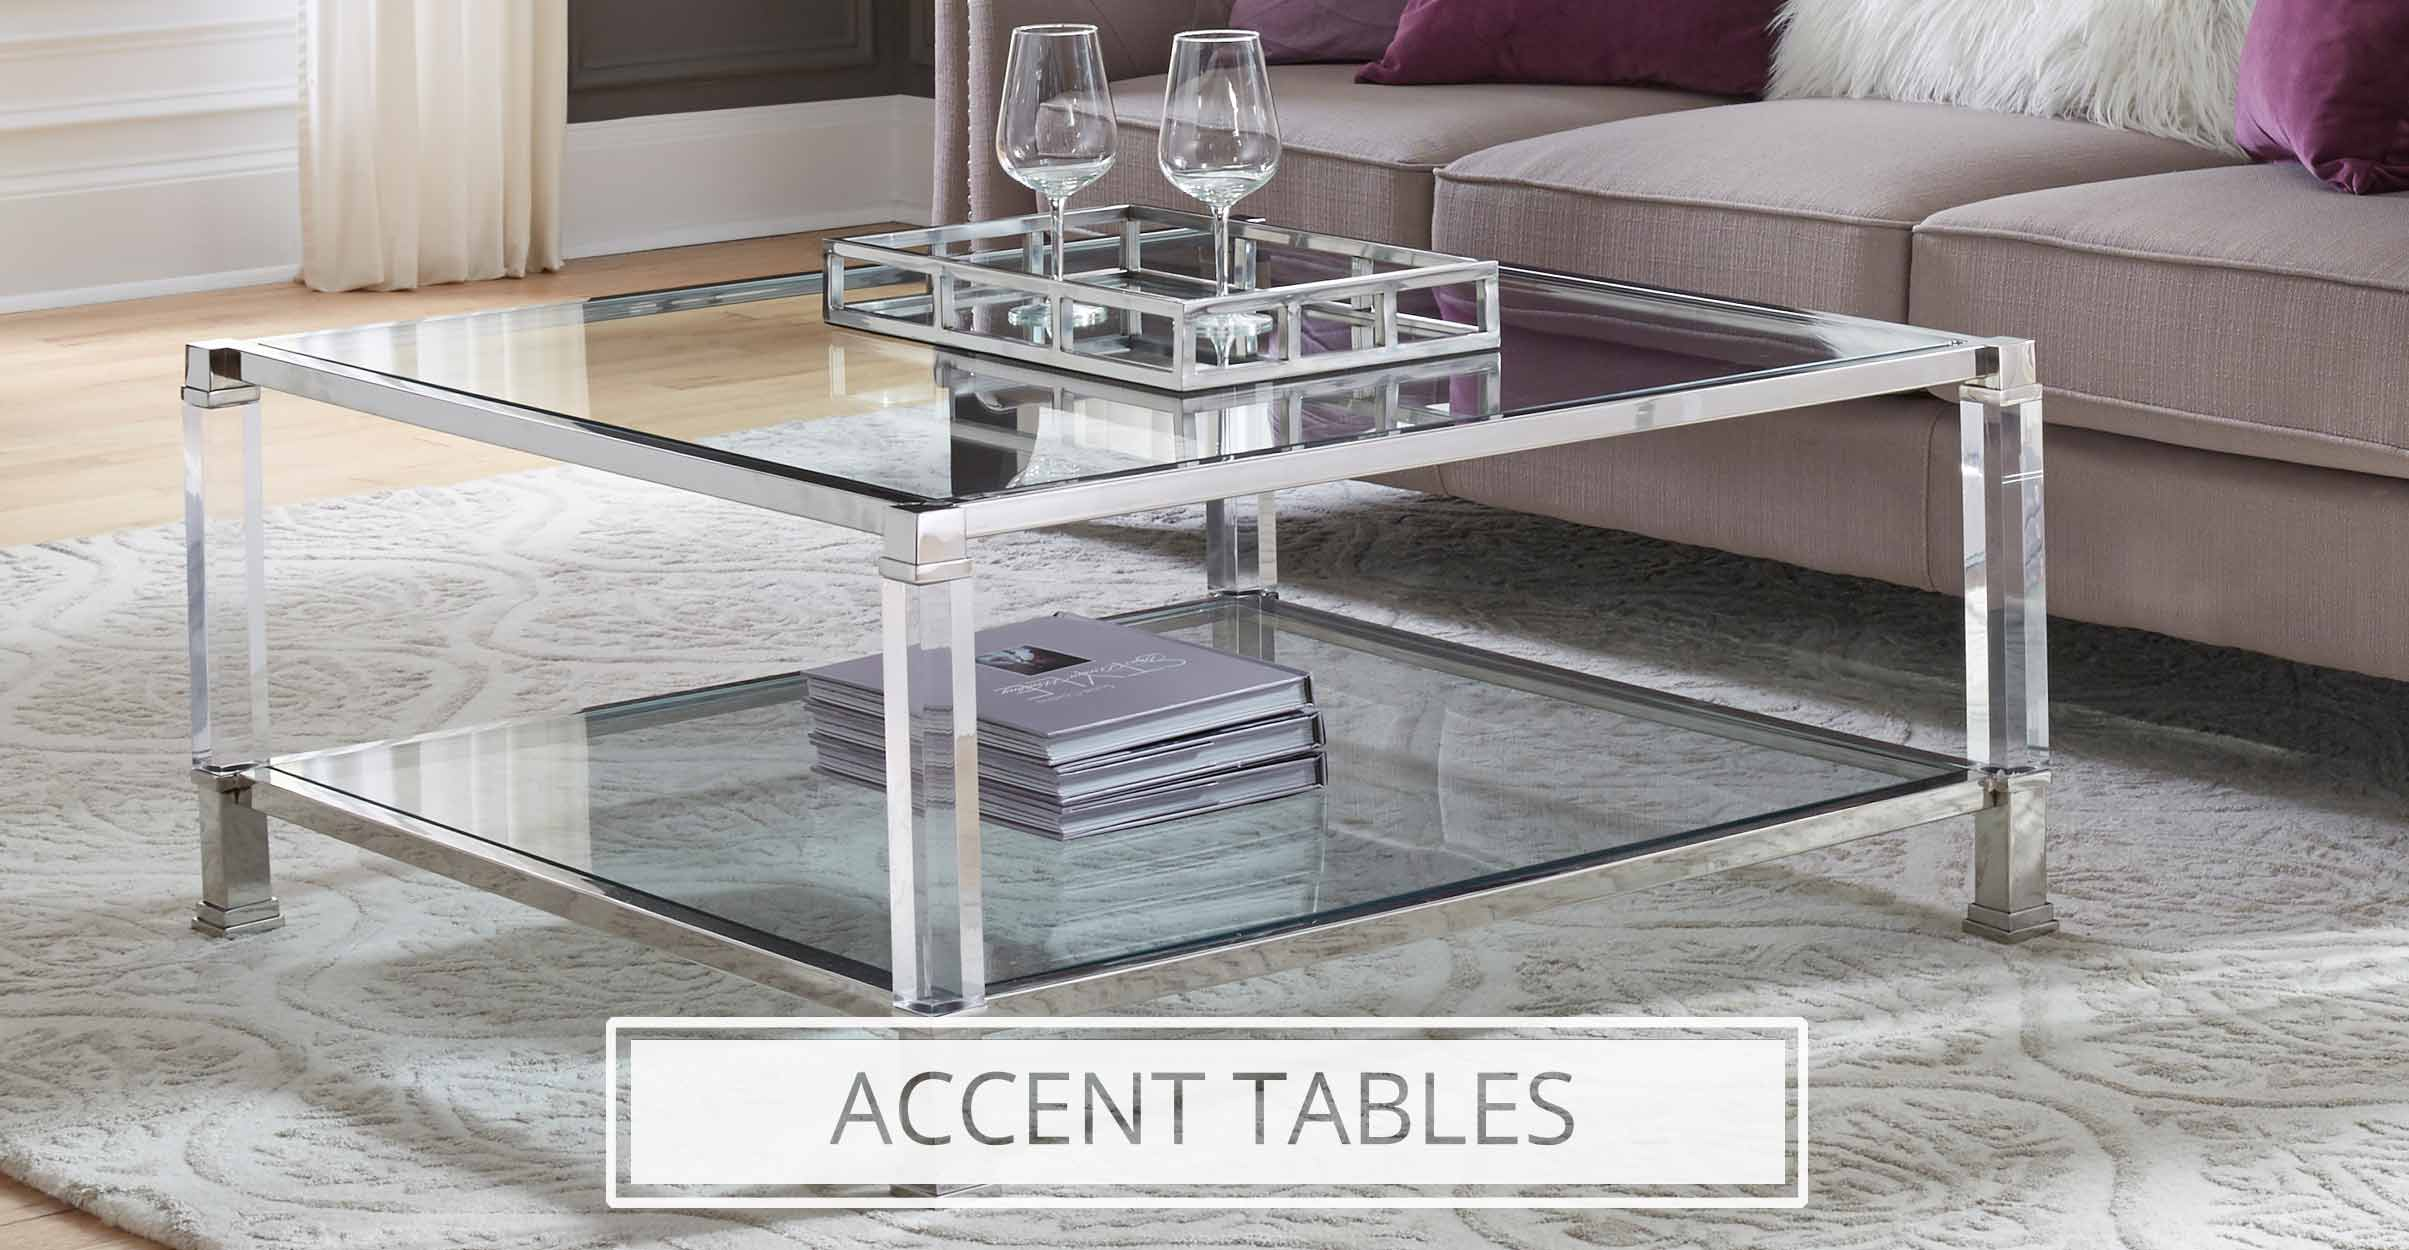 magnificent corner accent tables shelves decor ott table shades farmh mini for small round threshold plus centerpieces outdoor ideas and contemporary lamps tiffany living lighting